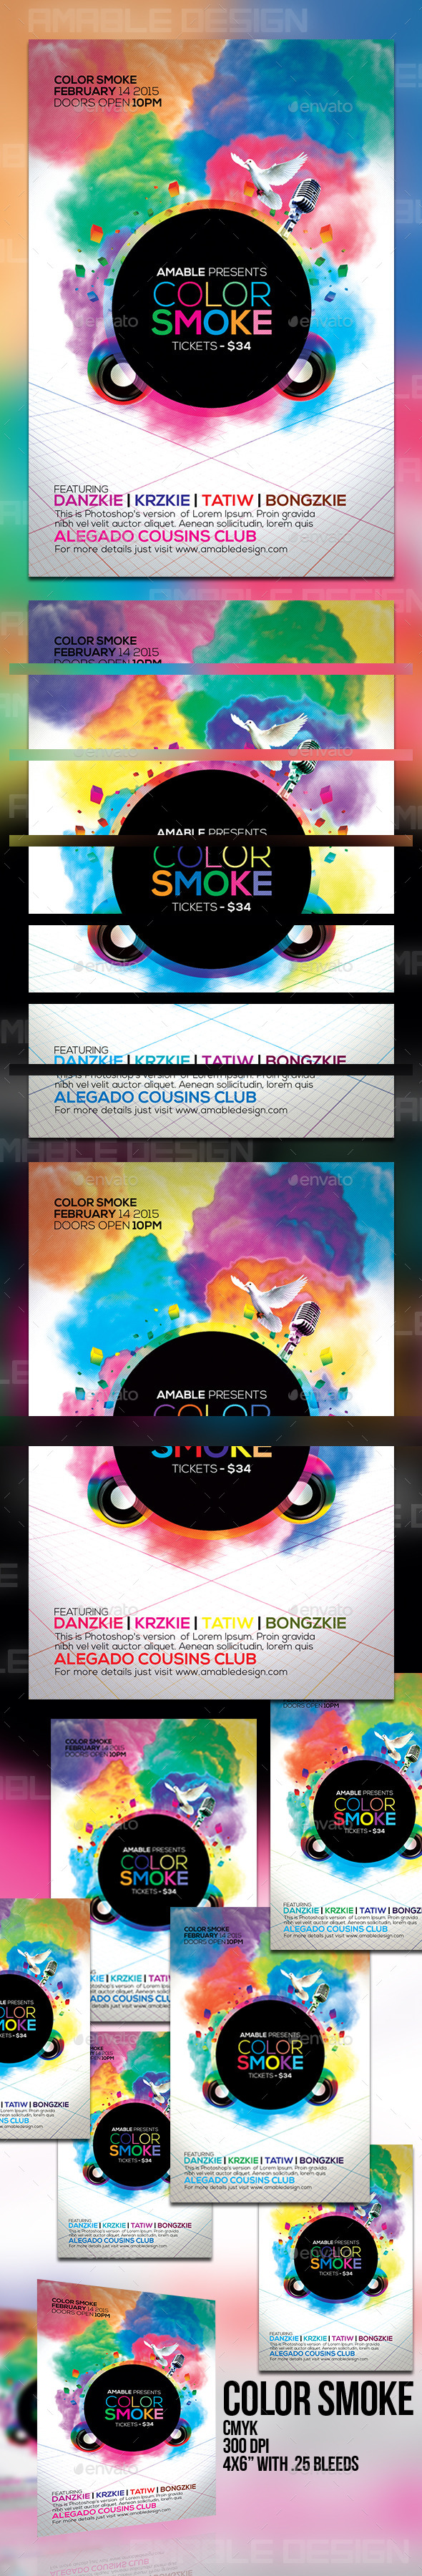 Color Smoke Flyer - Clubs & Parties Events